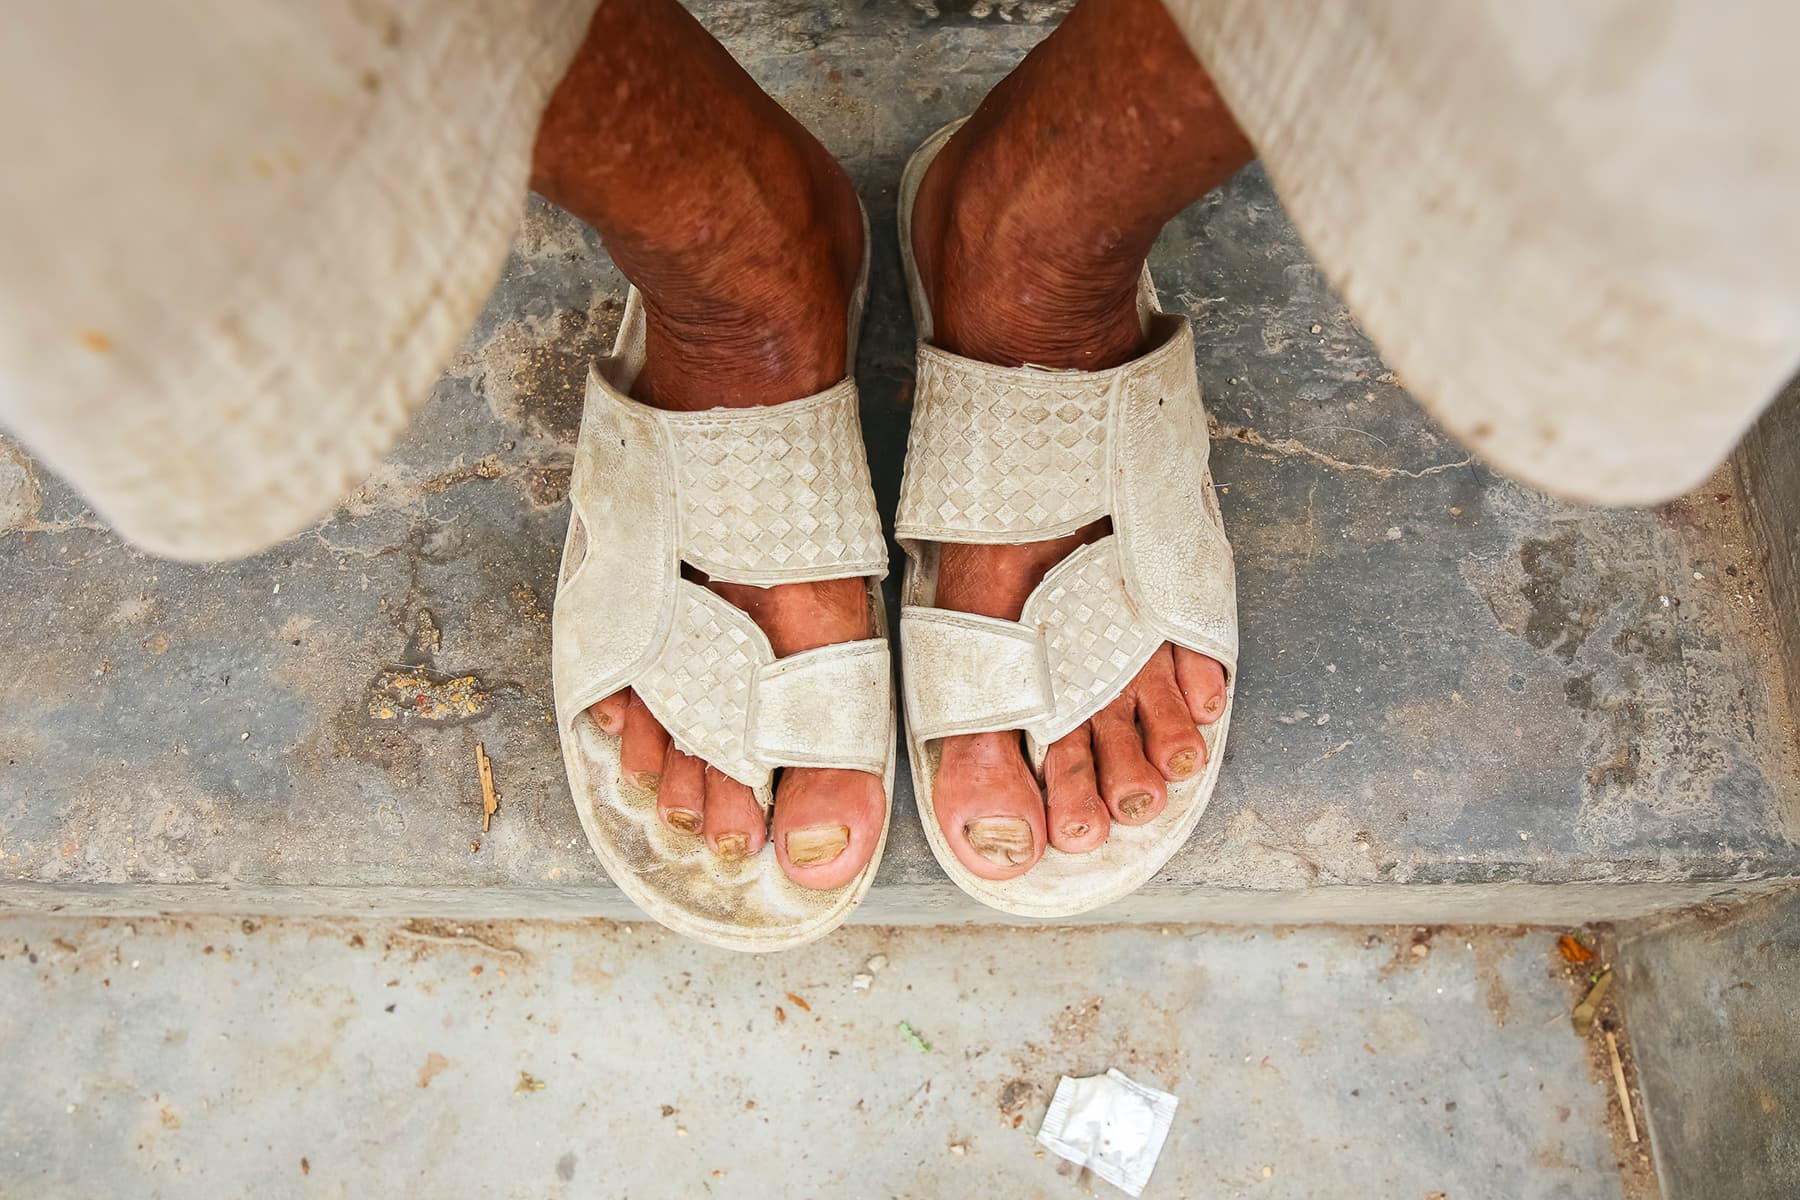 Dhobis develop an itch in their feet, a symptom very common among them.